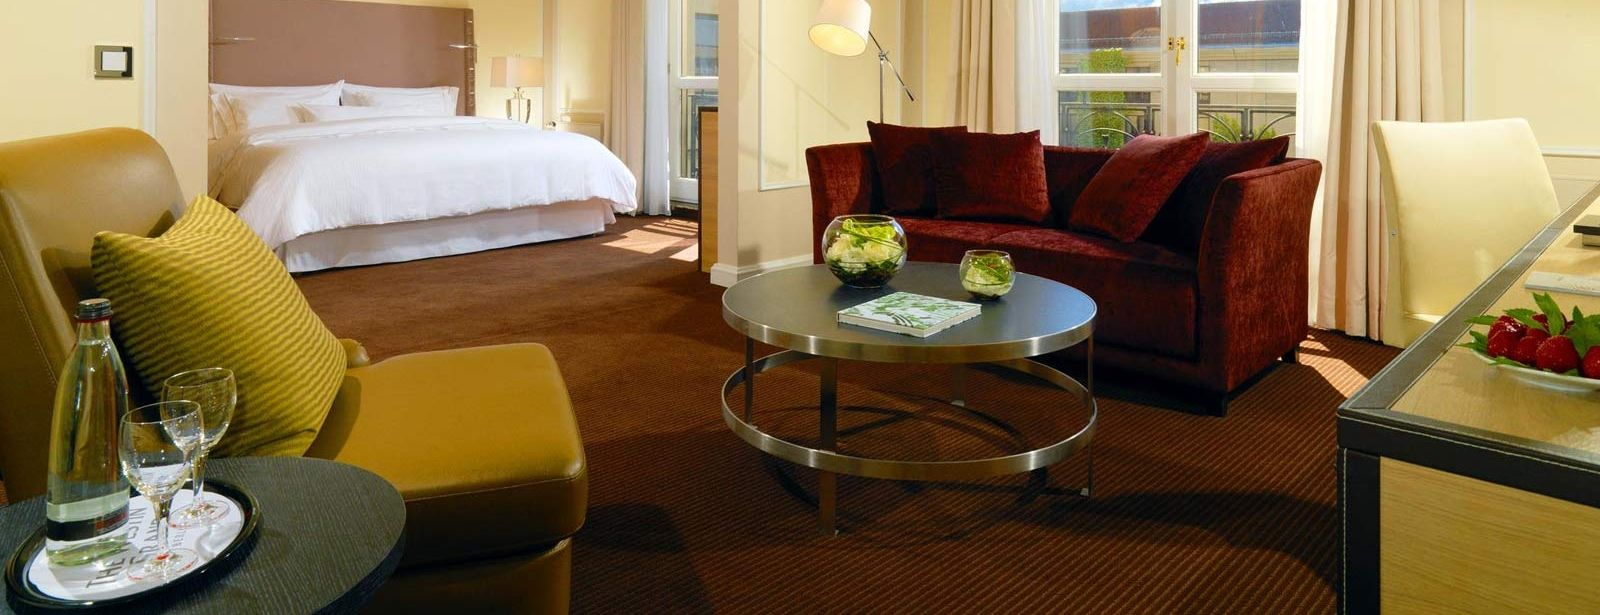 Junior Suite im The Westin Grand Hotel in Berlin